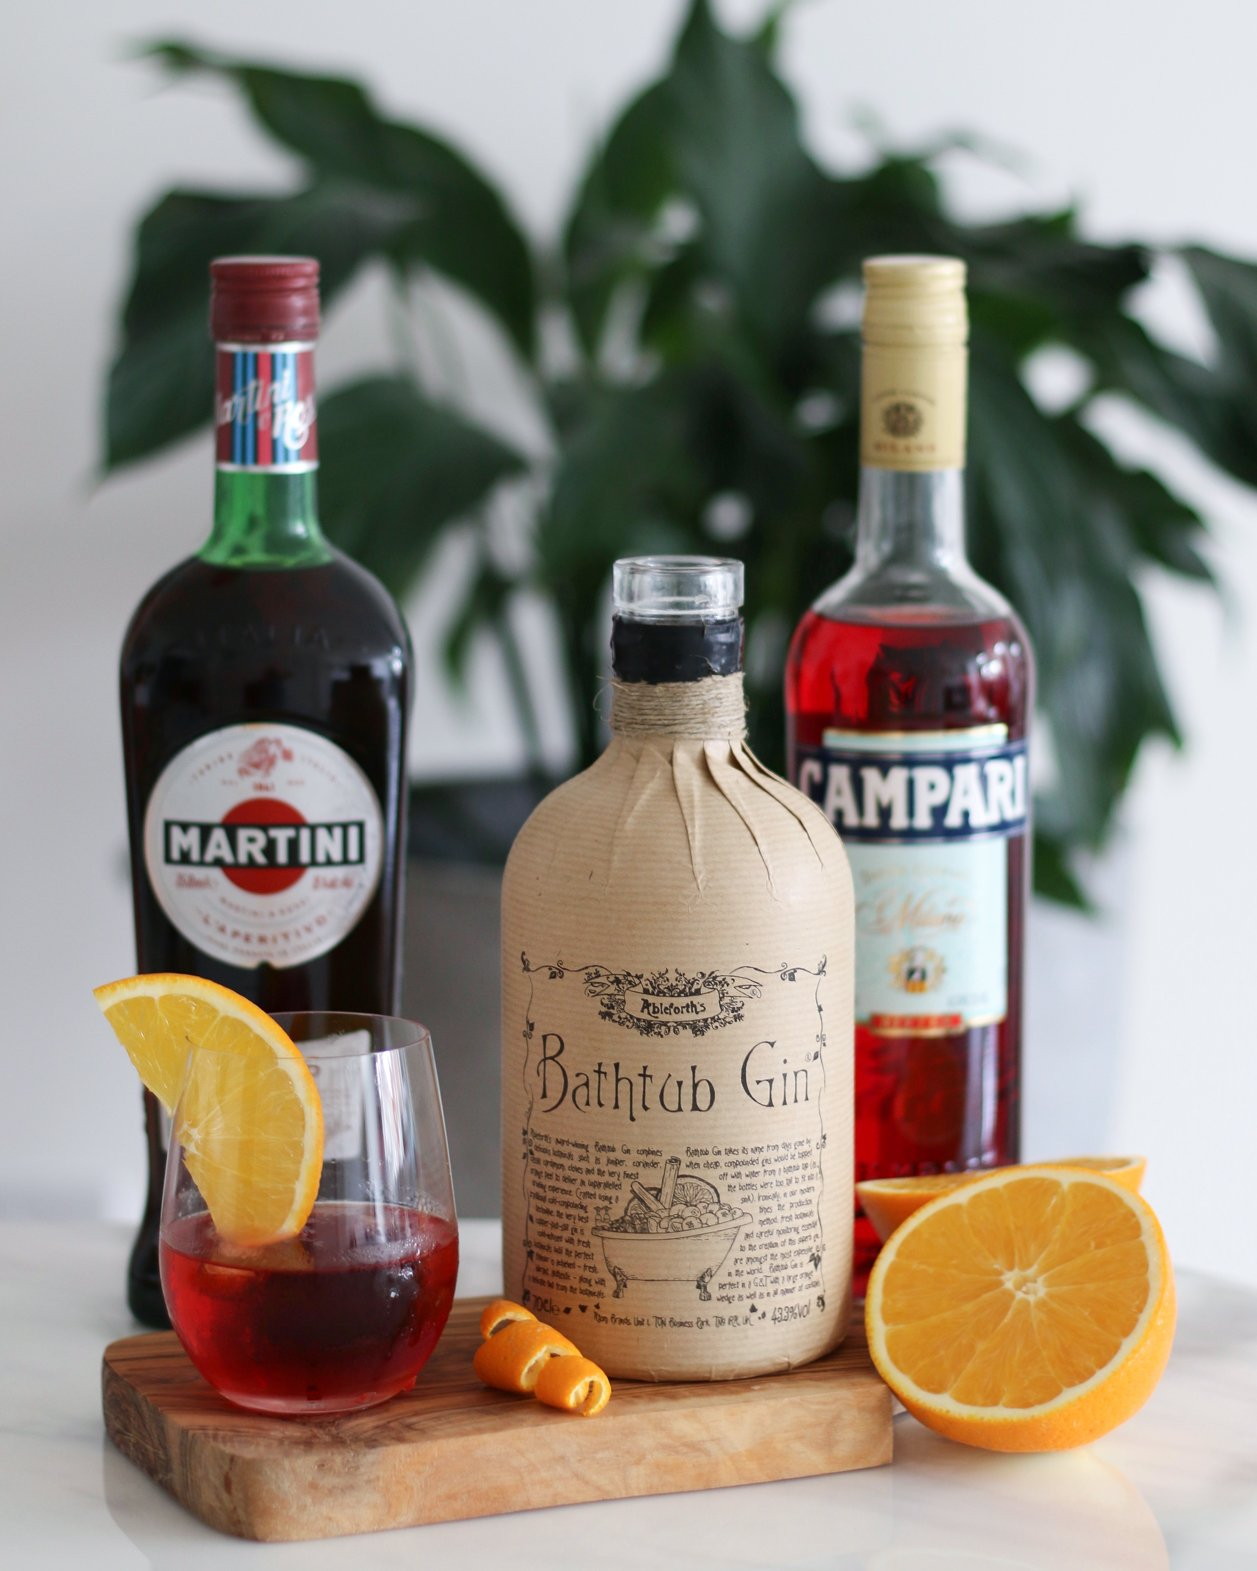 bathtub gin, martini and campari with negroni cocktail